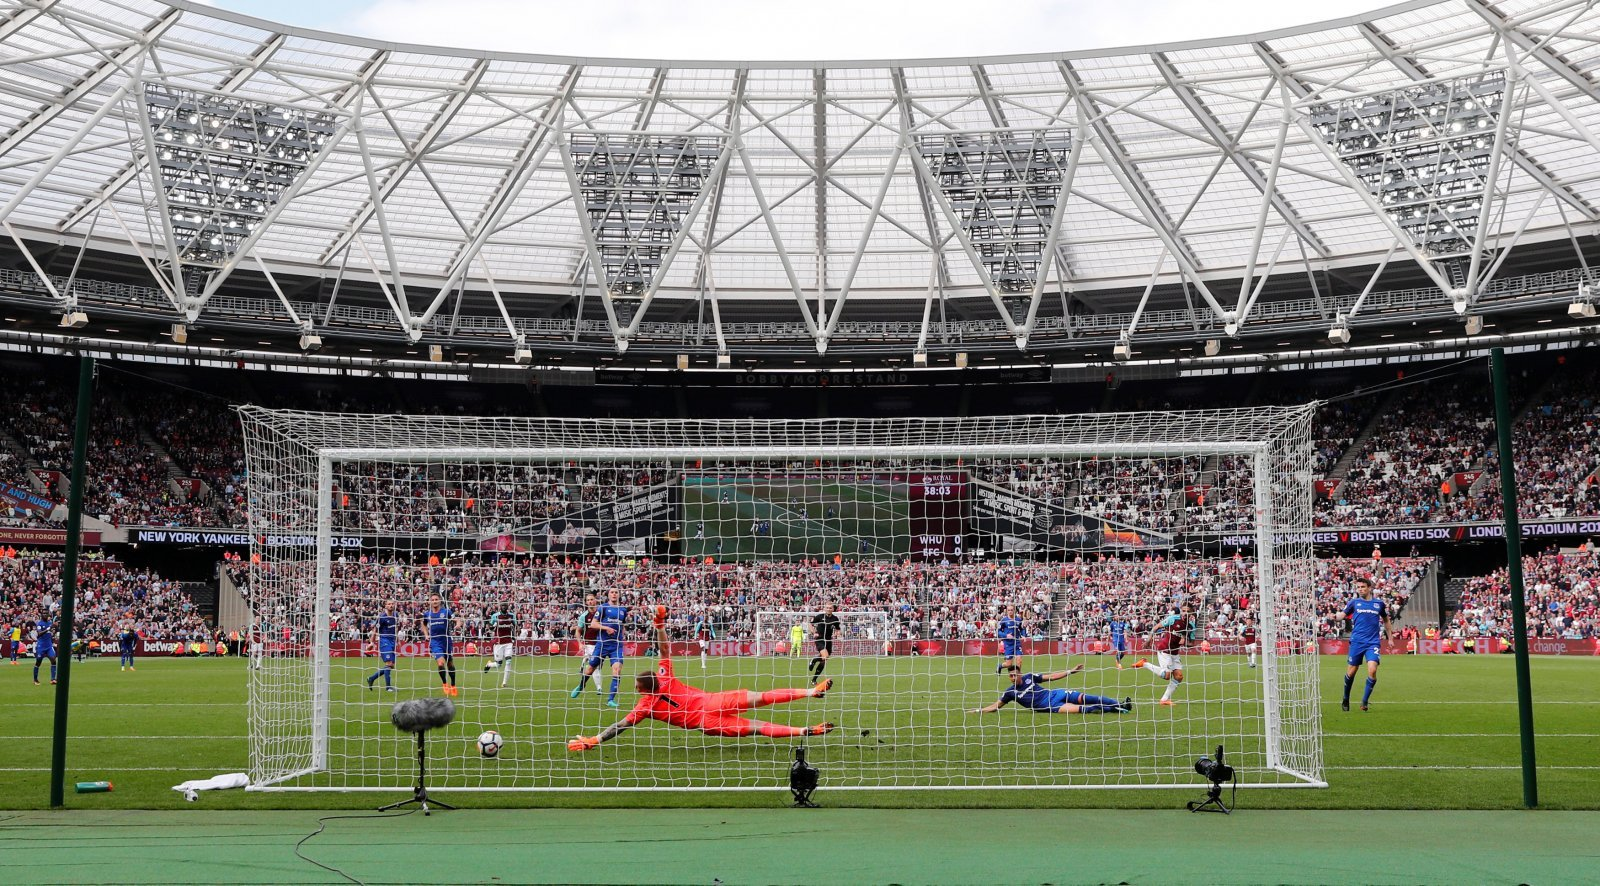 West Ham fans take to Twitter in delight at potential stadium changes